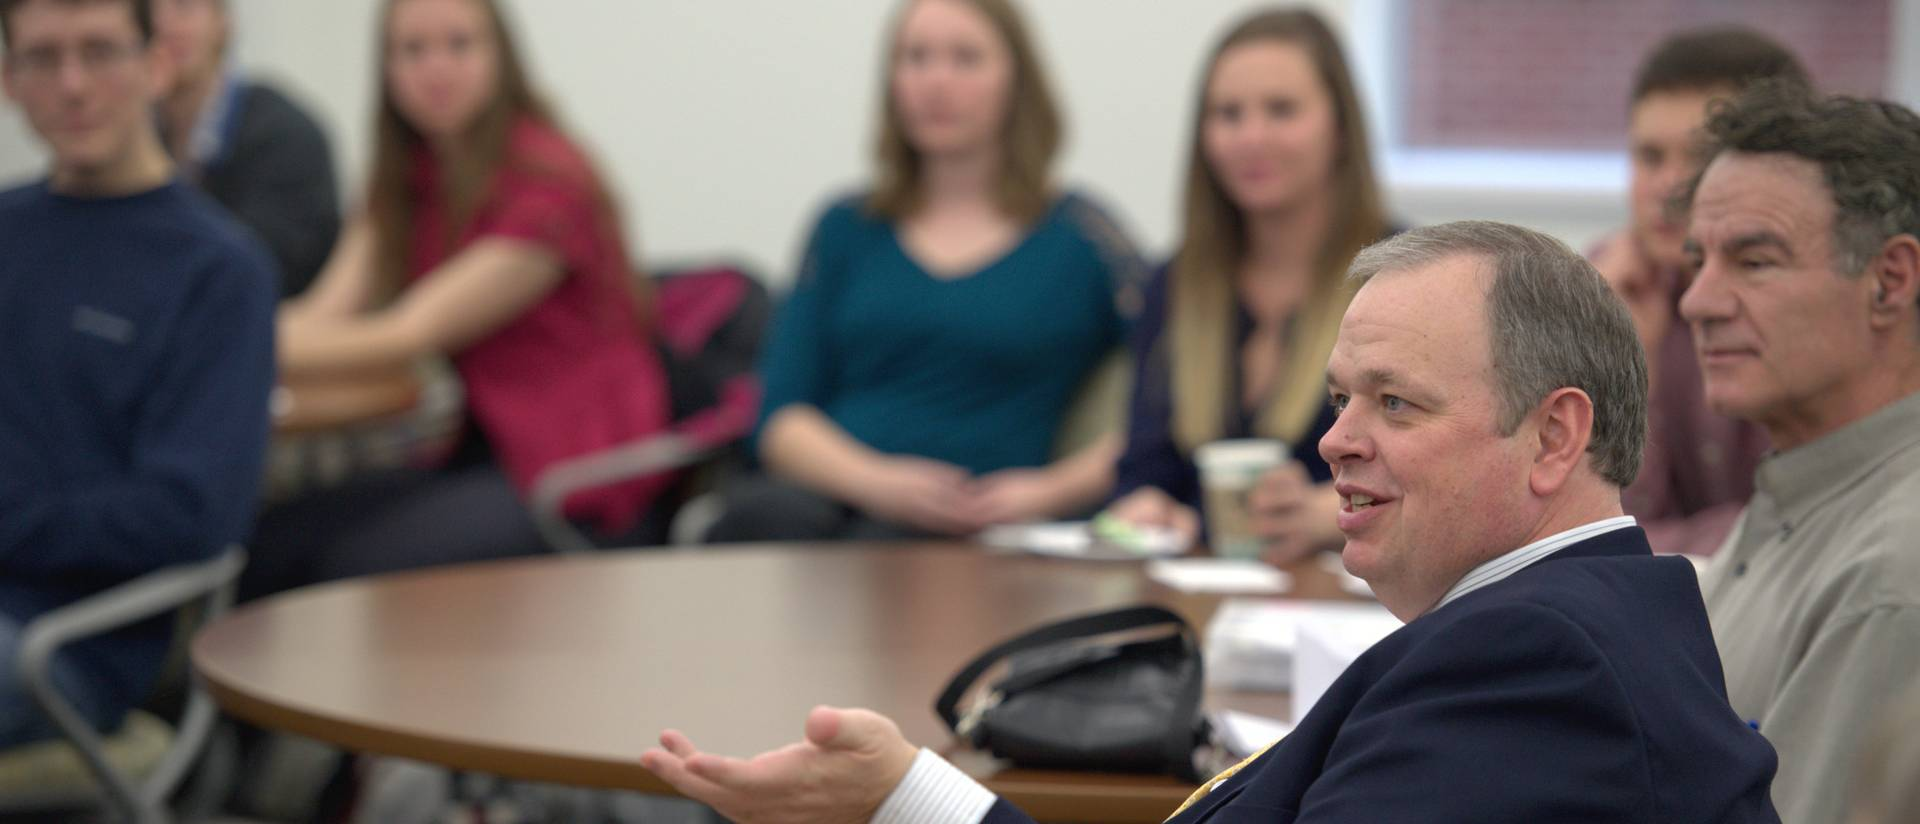 Chancellor Schmidt in discussion with students and faculty